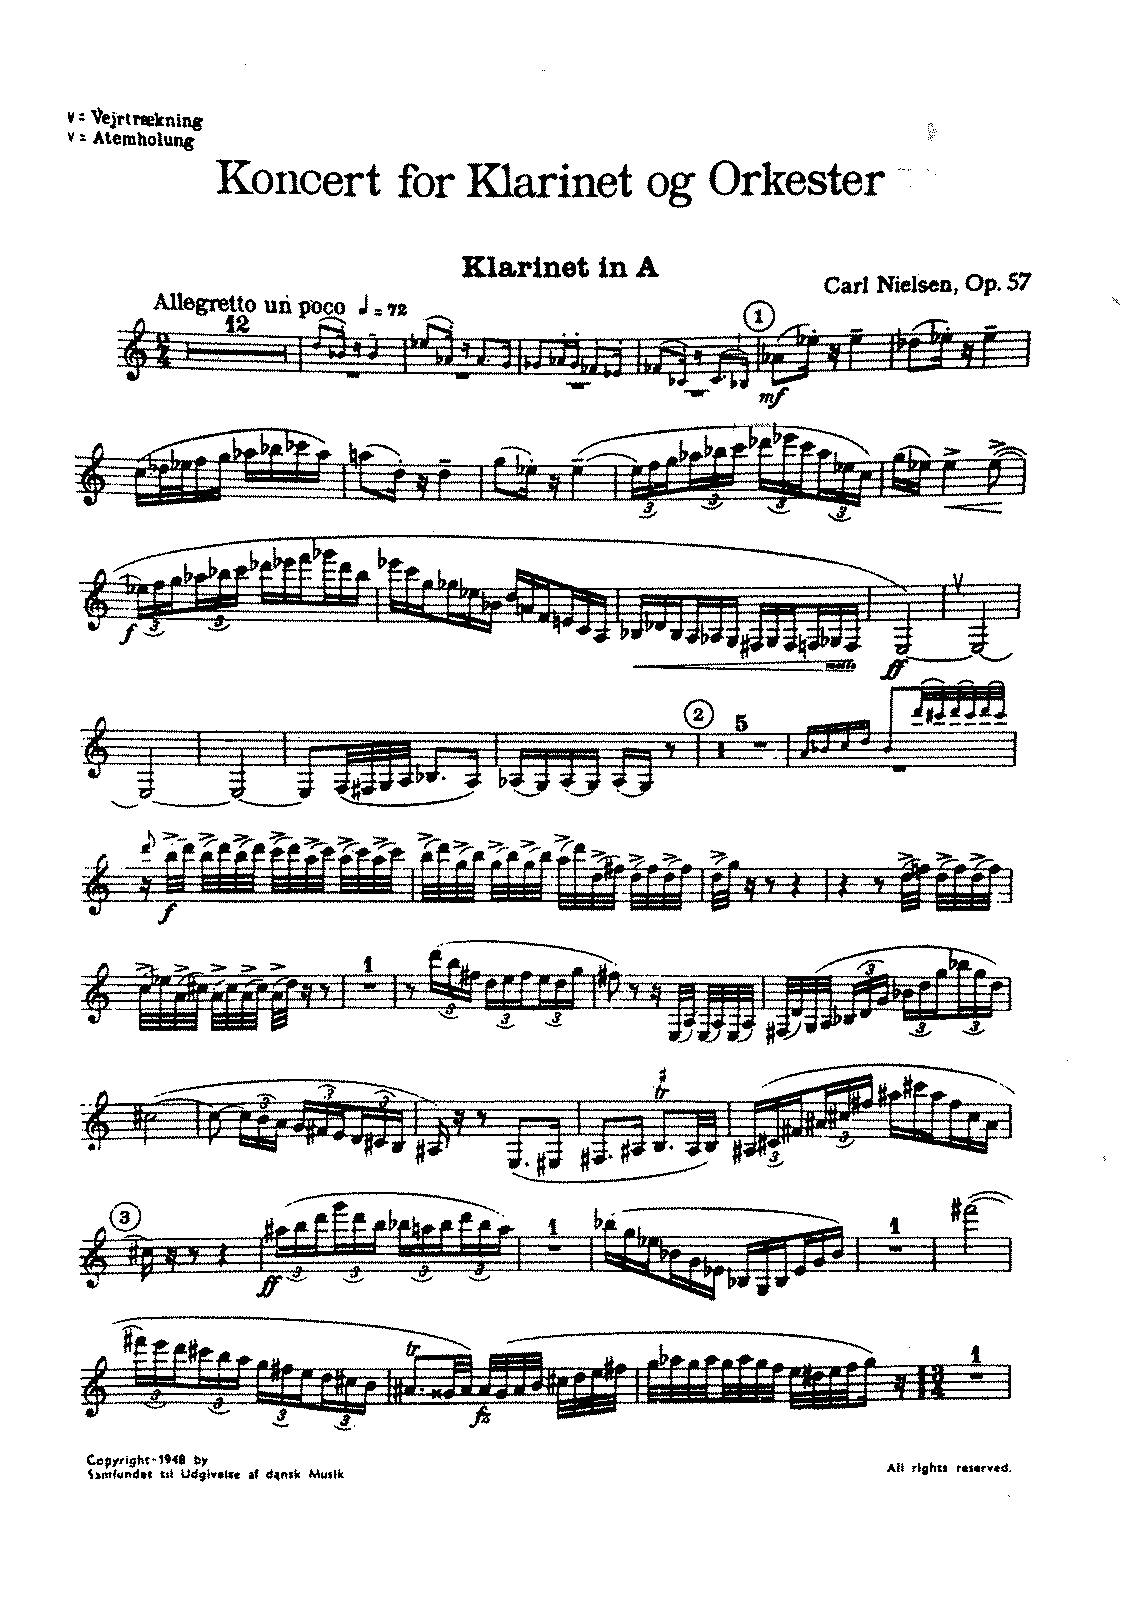 PMLP102450-Nielson Clarinet Concerto - Clarinet Part.pdf